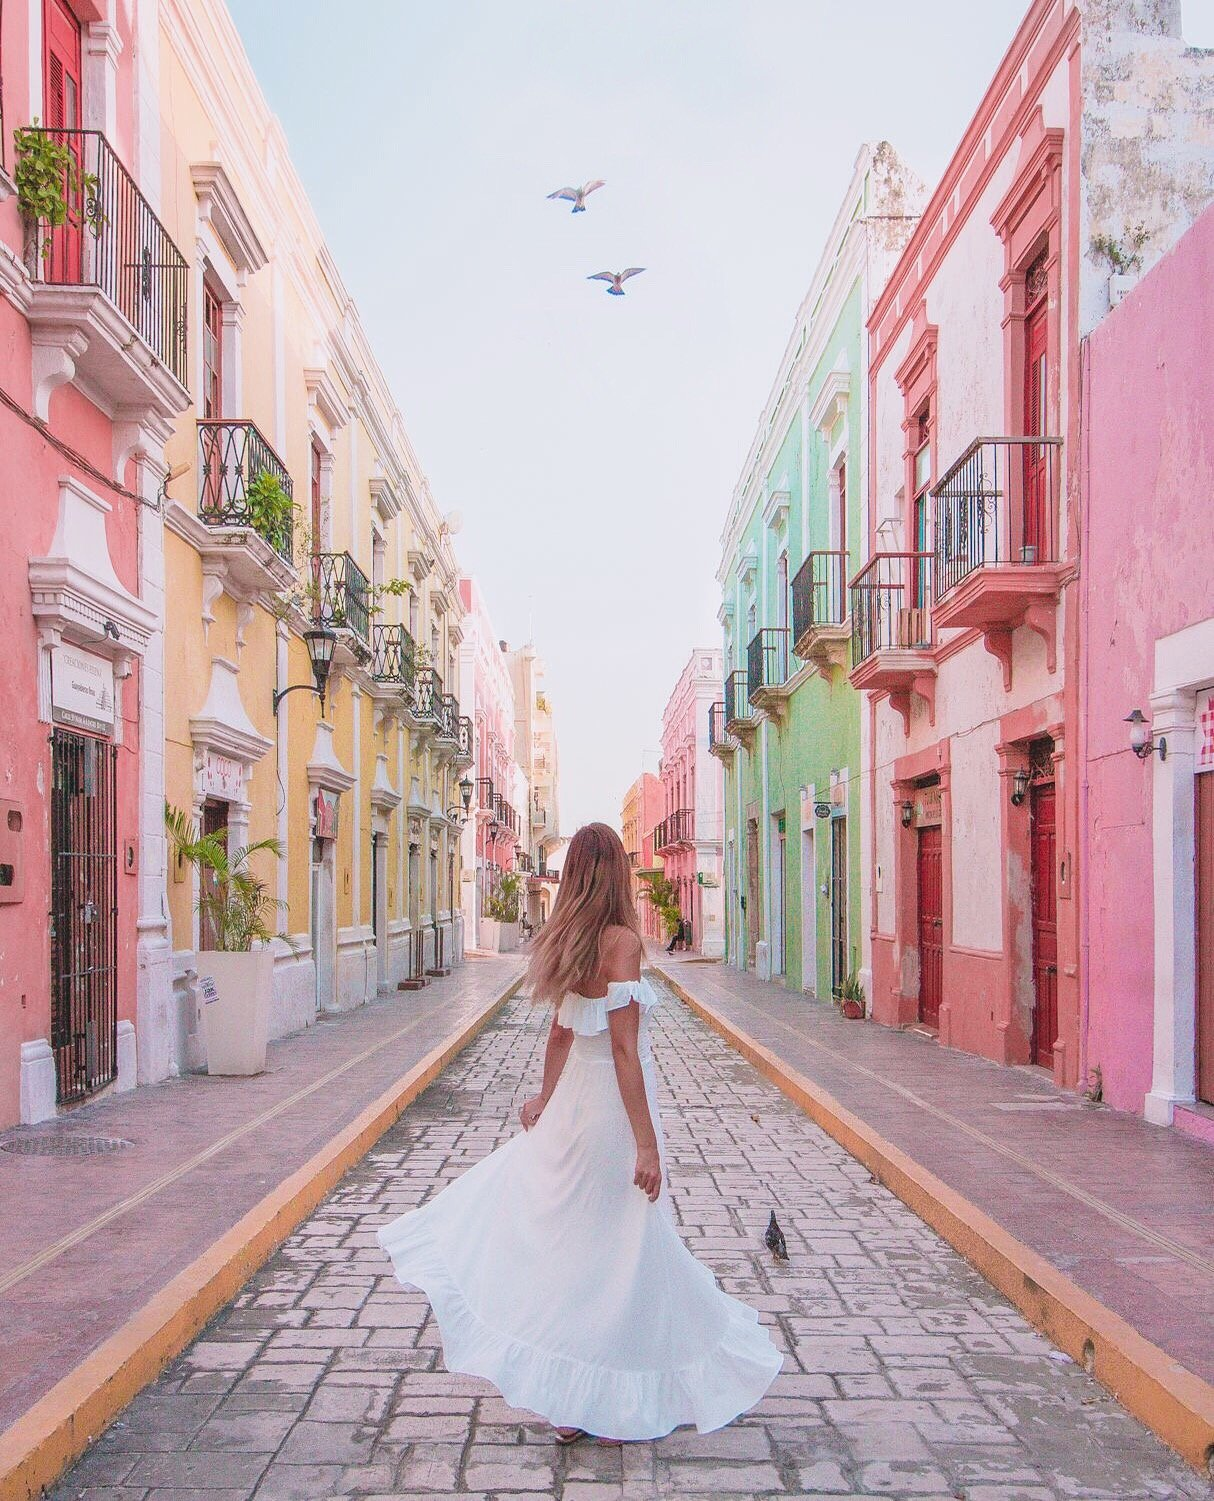 How to pose for Instagram travel photos: 10 easy poses